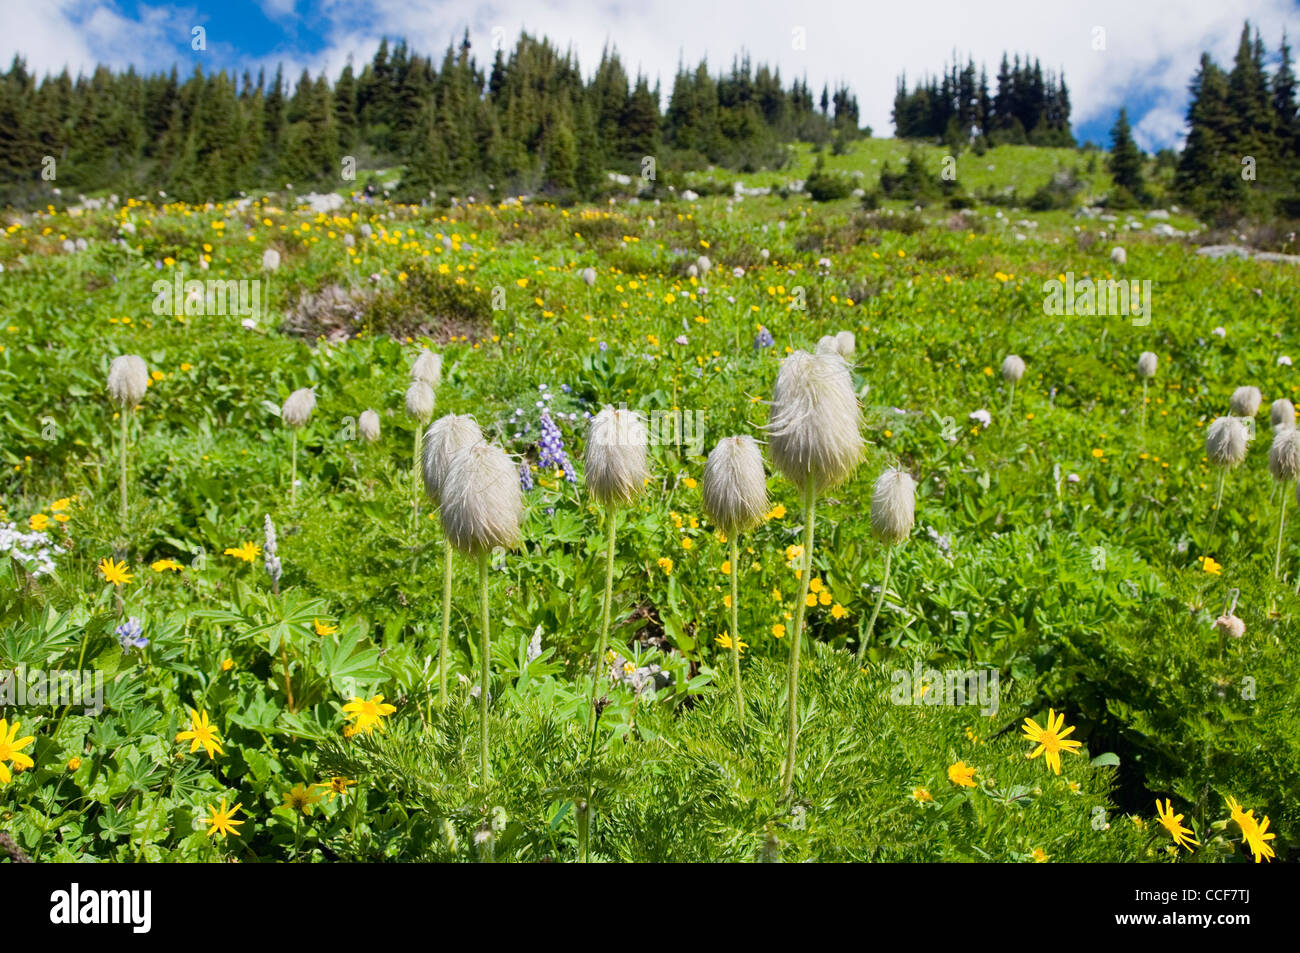 Mop Heads, seed pods of the Pasque flower, at Blackcomb Mountain, Whistler, BC,  Canada. - Stock Image